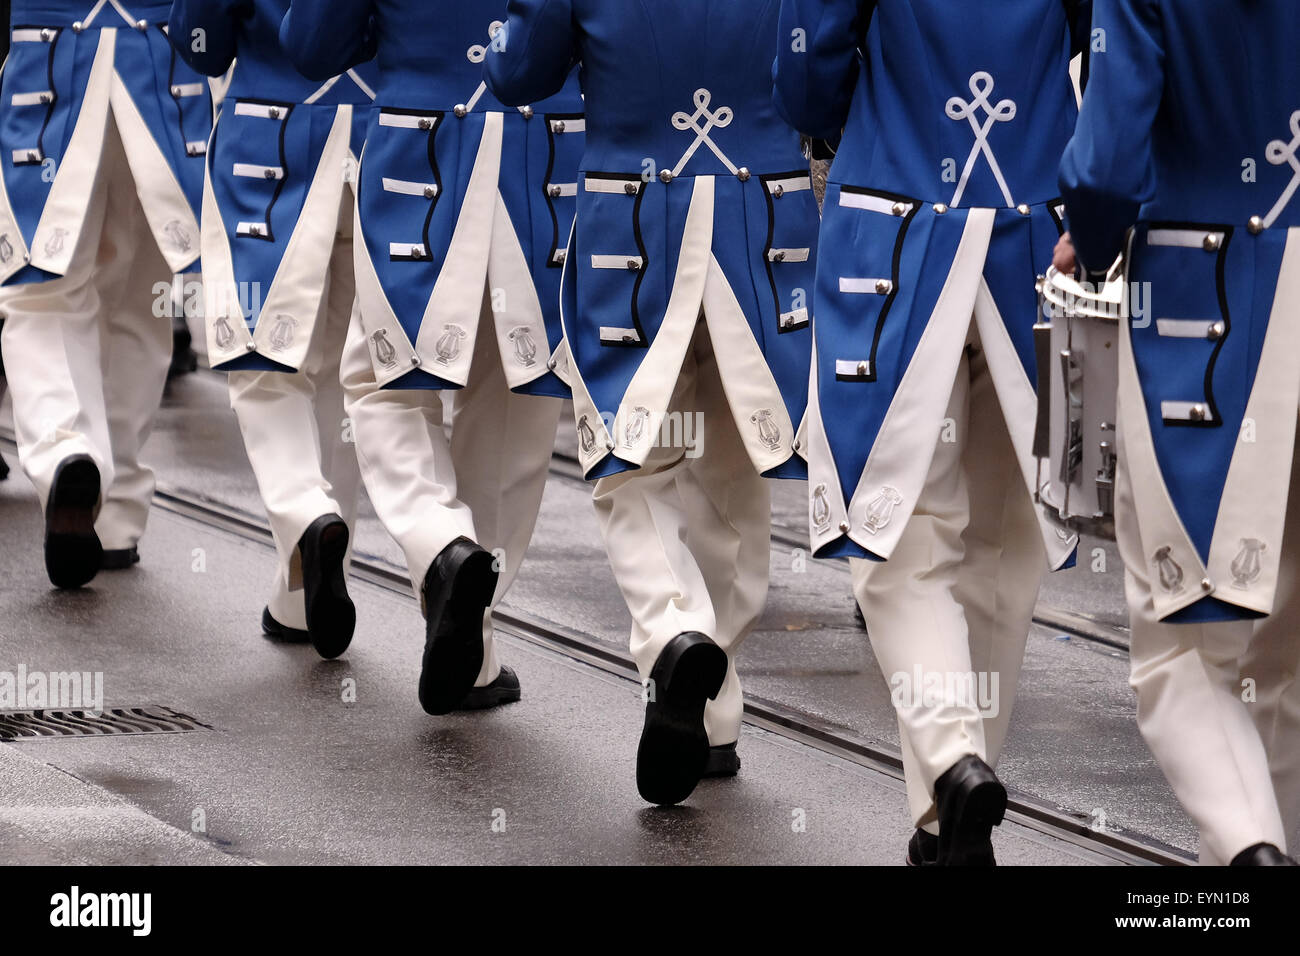 ZURICH, SWITZERLAND, 1st August, 2015. Zürich City Orchestra members march at the 1st August parade in Zürich, - Stock Image